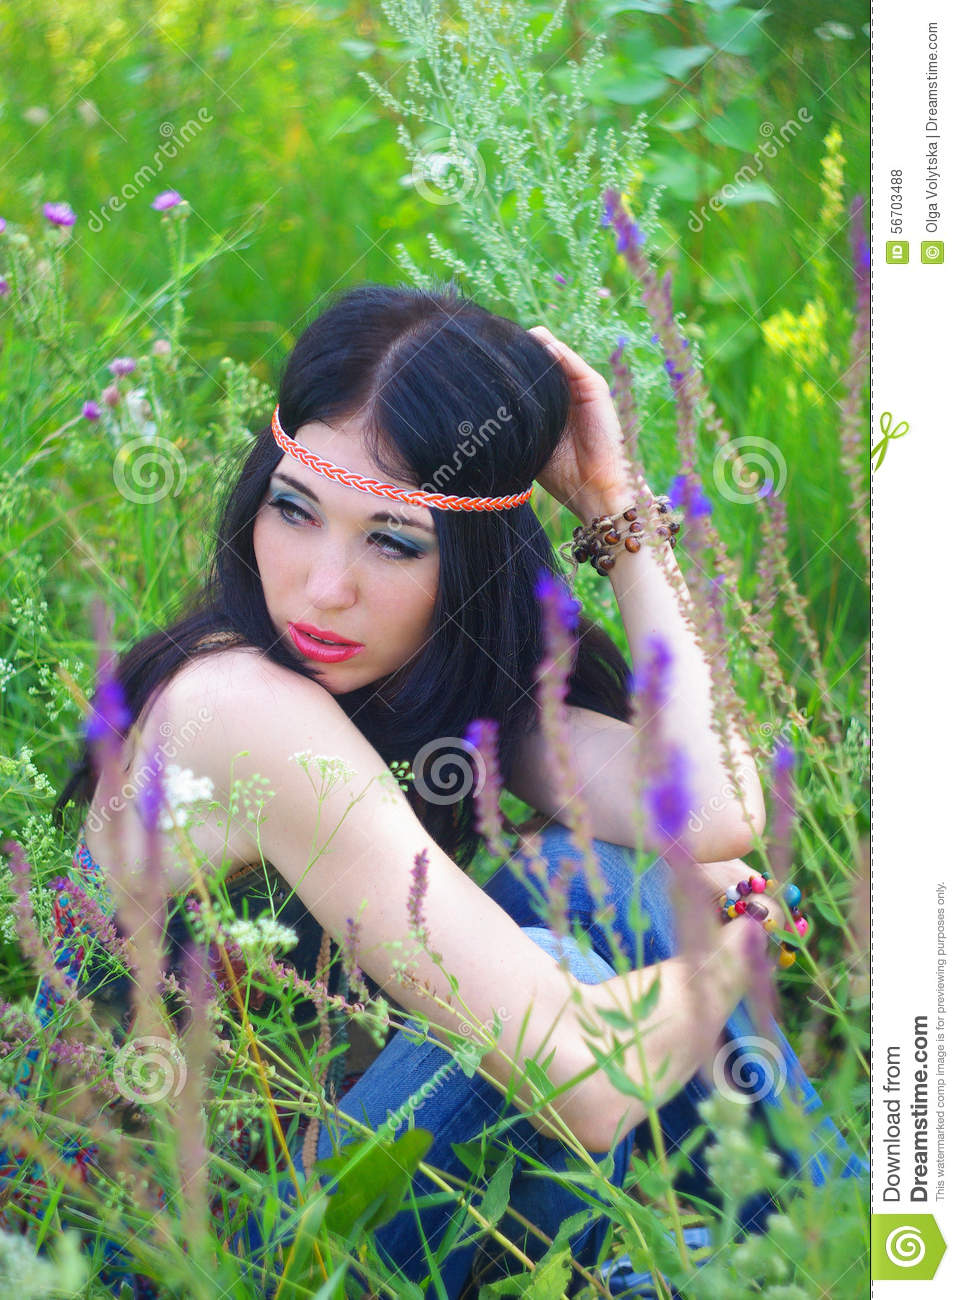 Girl Hippie Posing Outdoor  Boho Style Boho Chic